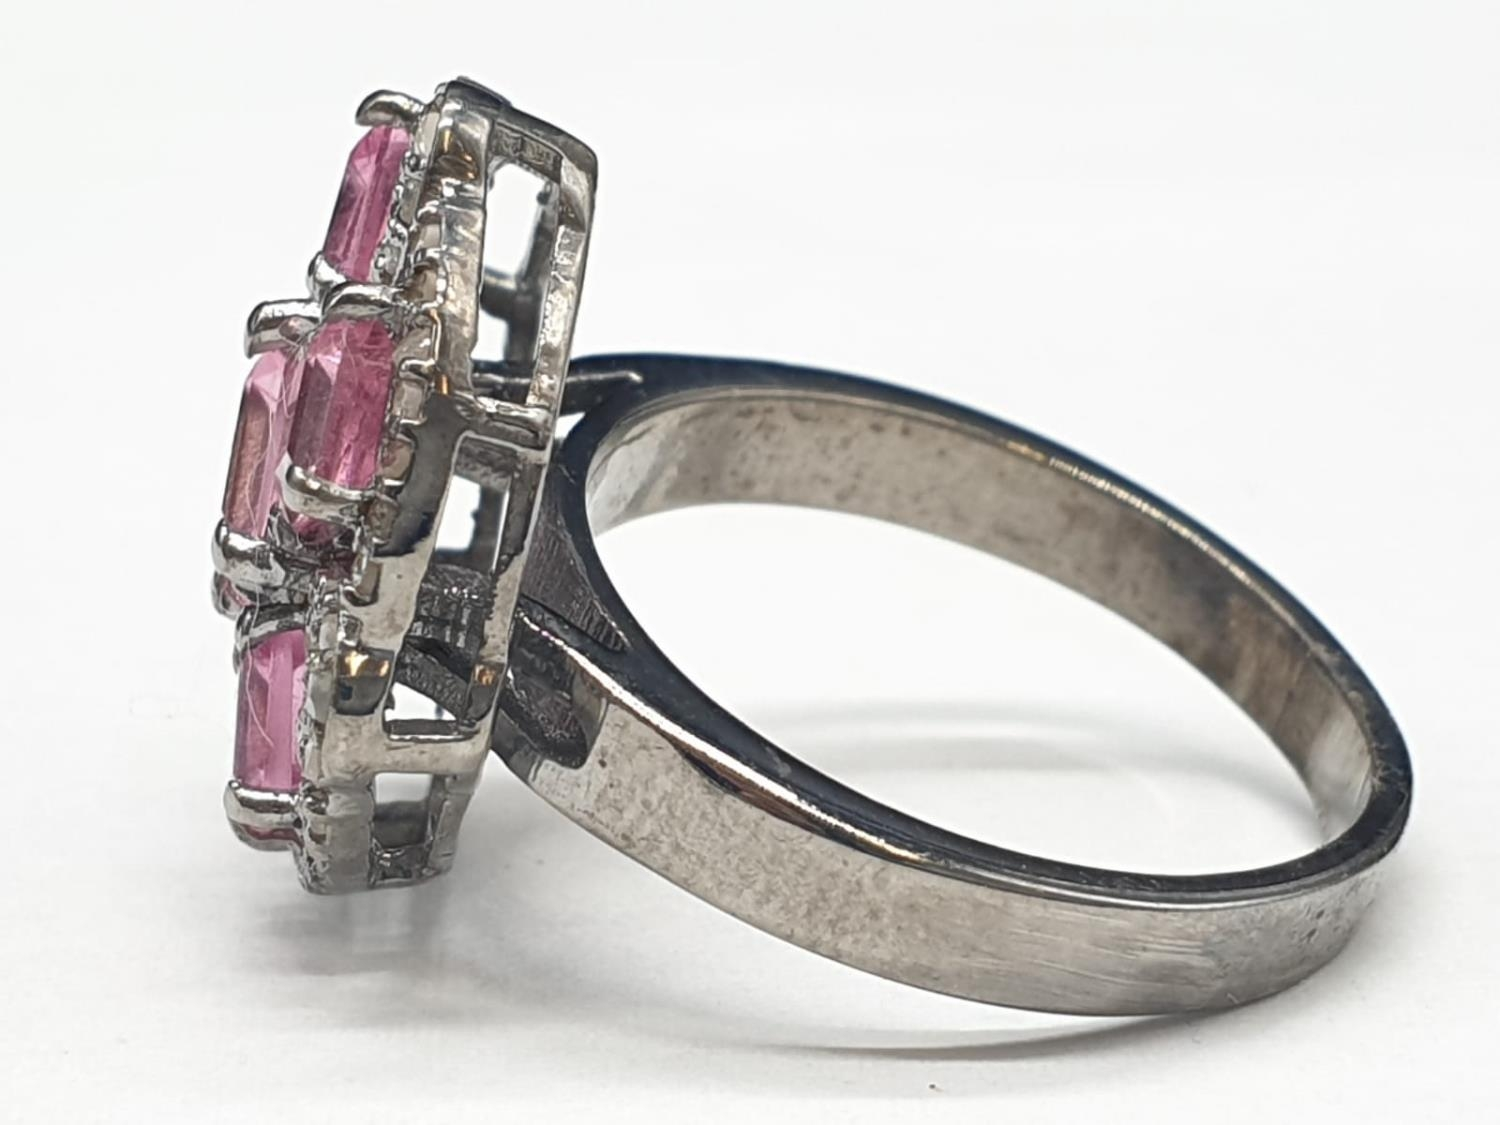 925 blackened silver ring. Consisting of 2.50 Ct Tourmaline & 0.50 Ct Rose cut diamonds, weight 6g - Image 3 of 6